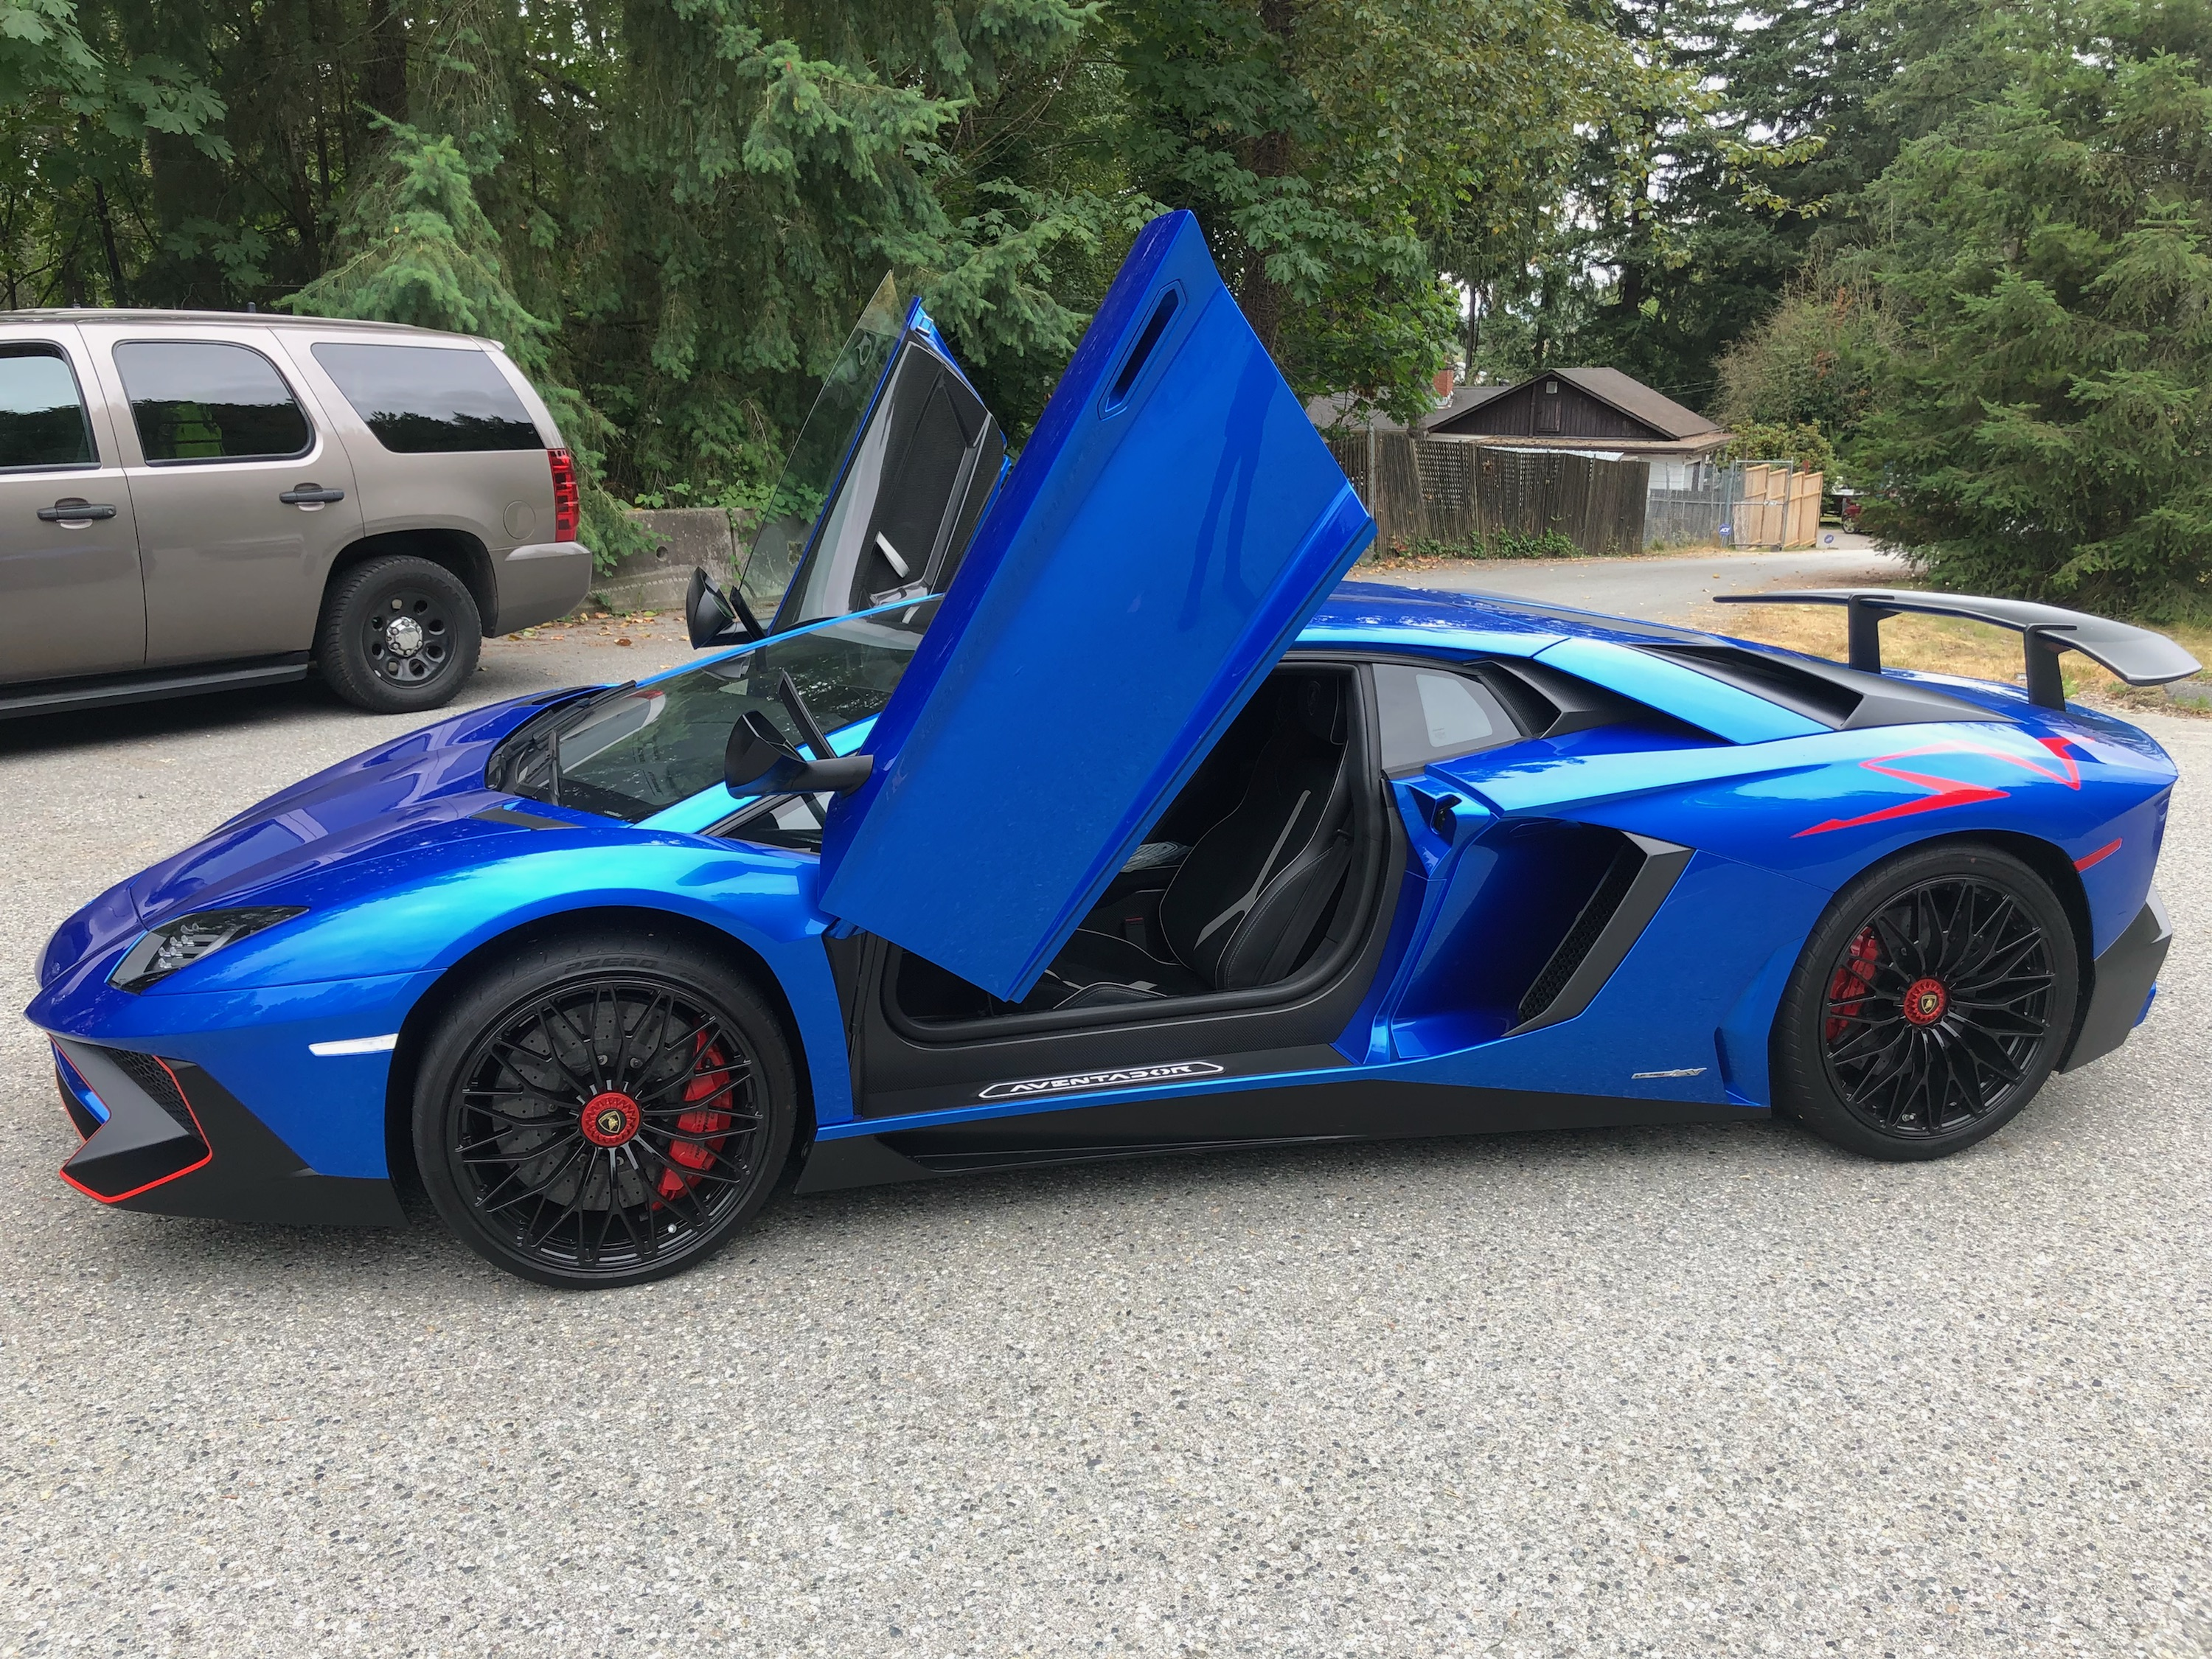 High End Cars >> One Of Two Drivers Speeding In High End Cars Had His N Ridge